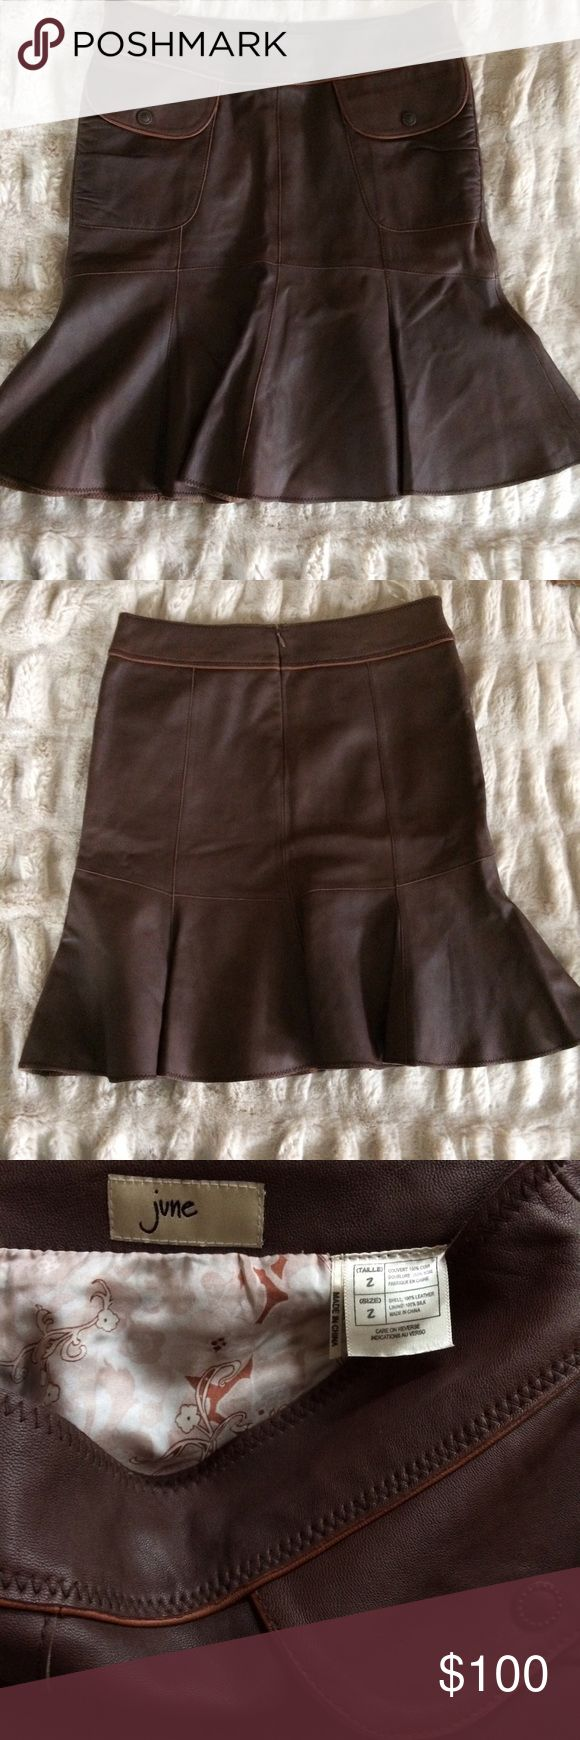 """Anthropologie June Leather Skirt Beautiful rich soft chocolate brown leather skirt -fitted then subtle mermaid/tulip type flare shape. 2 pockets with snap-down flaps in front, back zipper, and pretty printed lining.  100% leather with 100% silk lining.  Overall length is 20"""" (hits just above knee on me -I'm 5'6"""" for reference).  EUC/like new/no flaws! Anthropologie Skirts"""